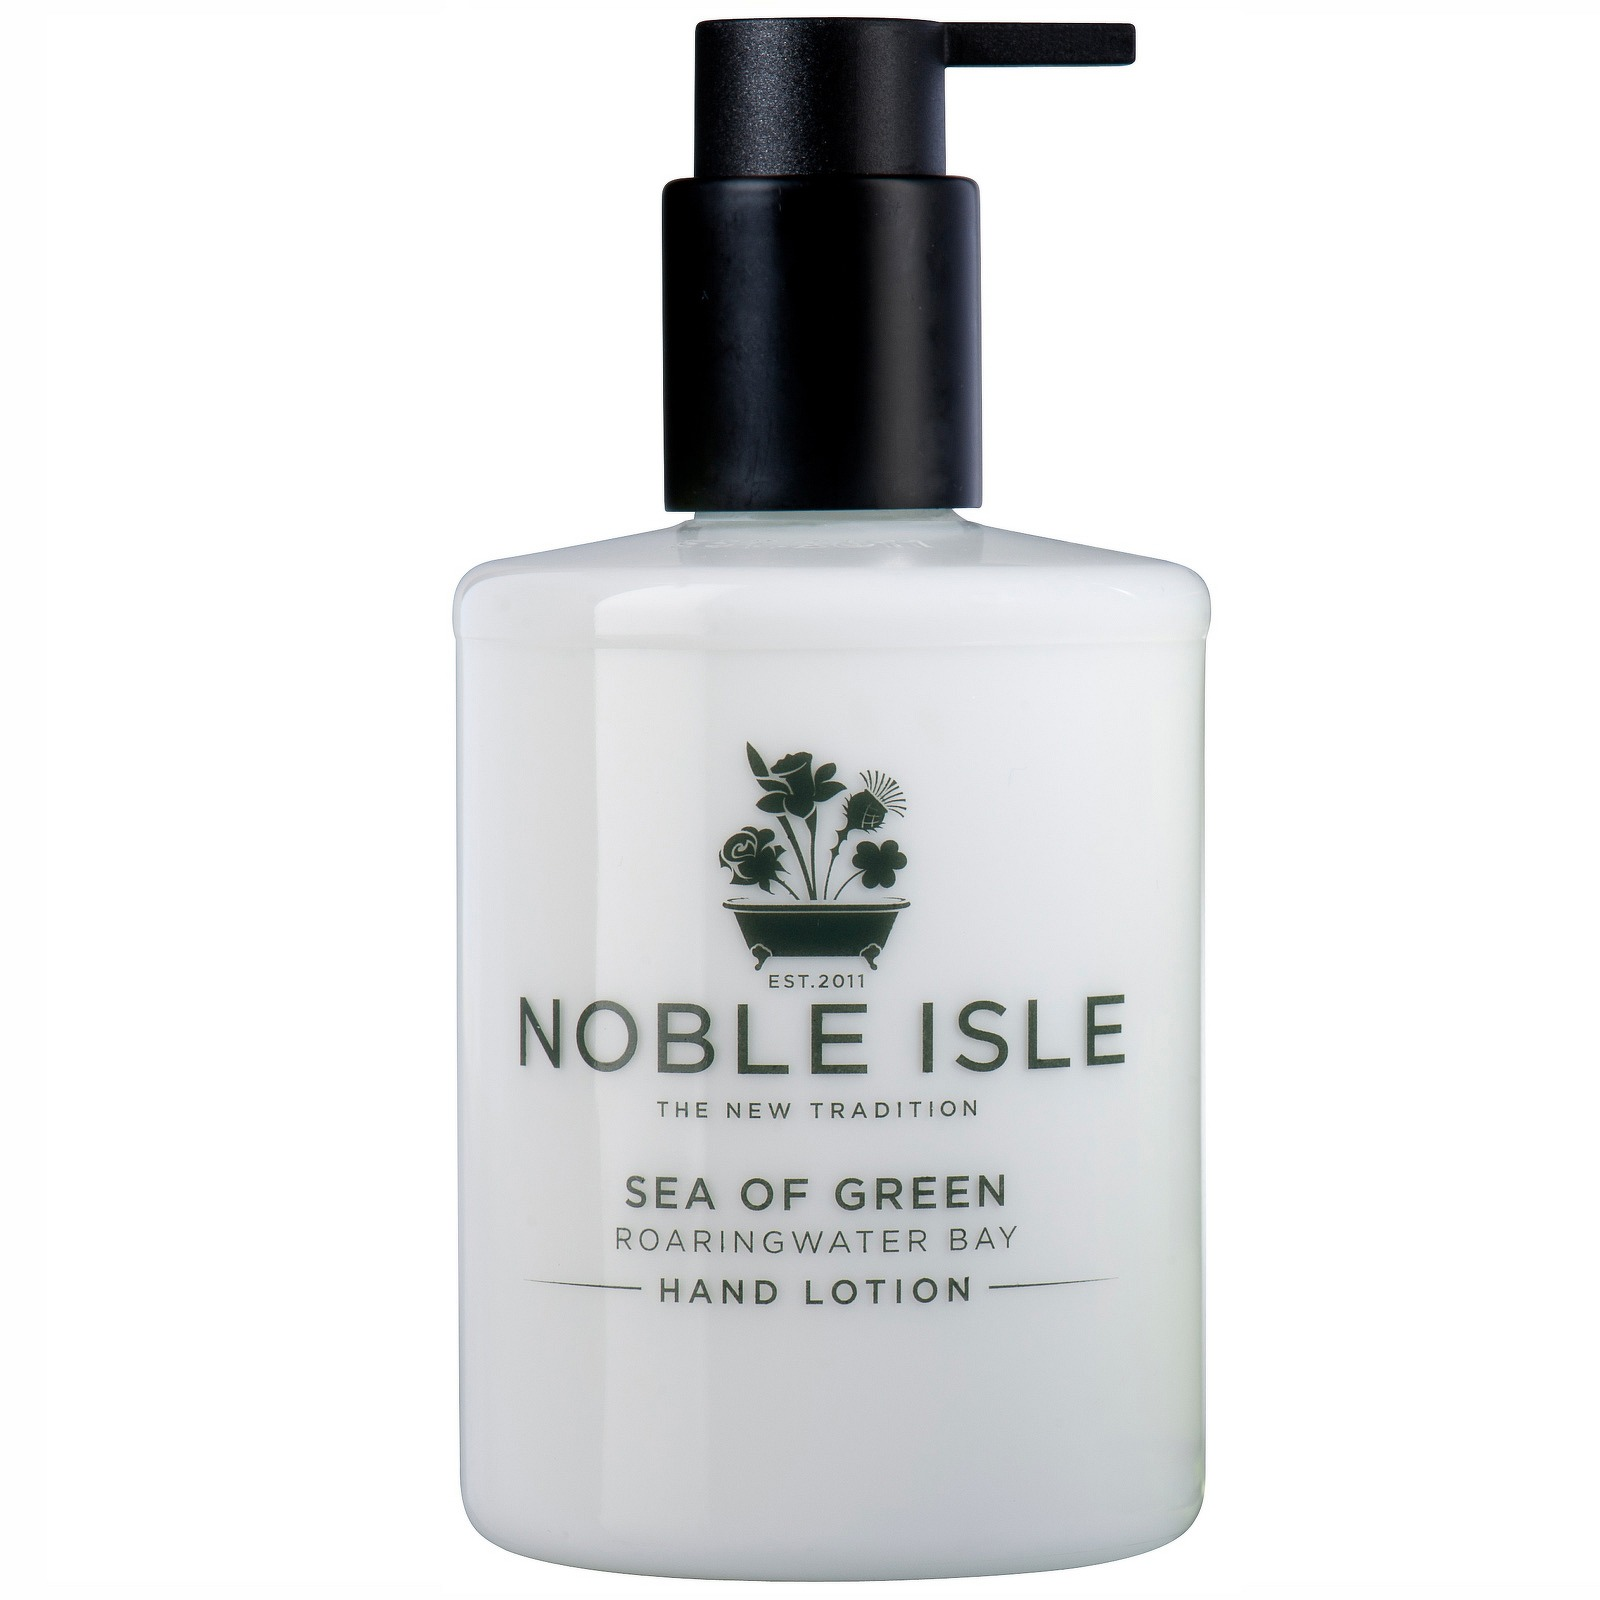 Noble Isle Hand Lotion Sea of Green Hand Lotion 250ml